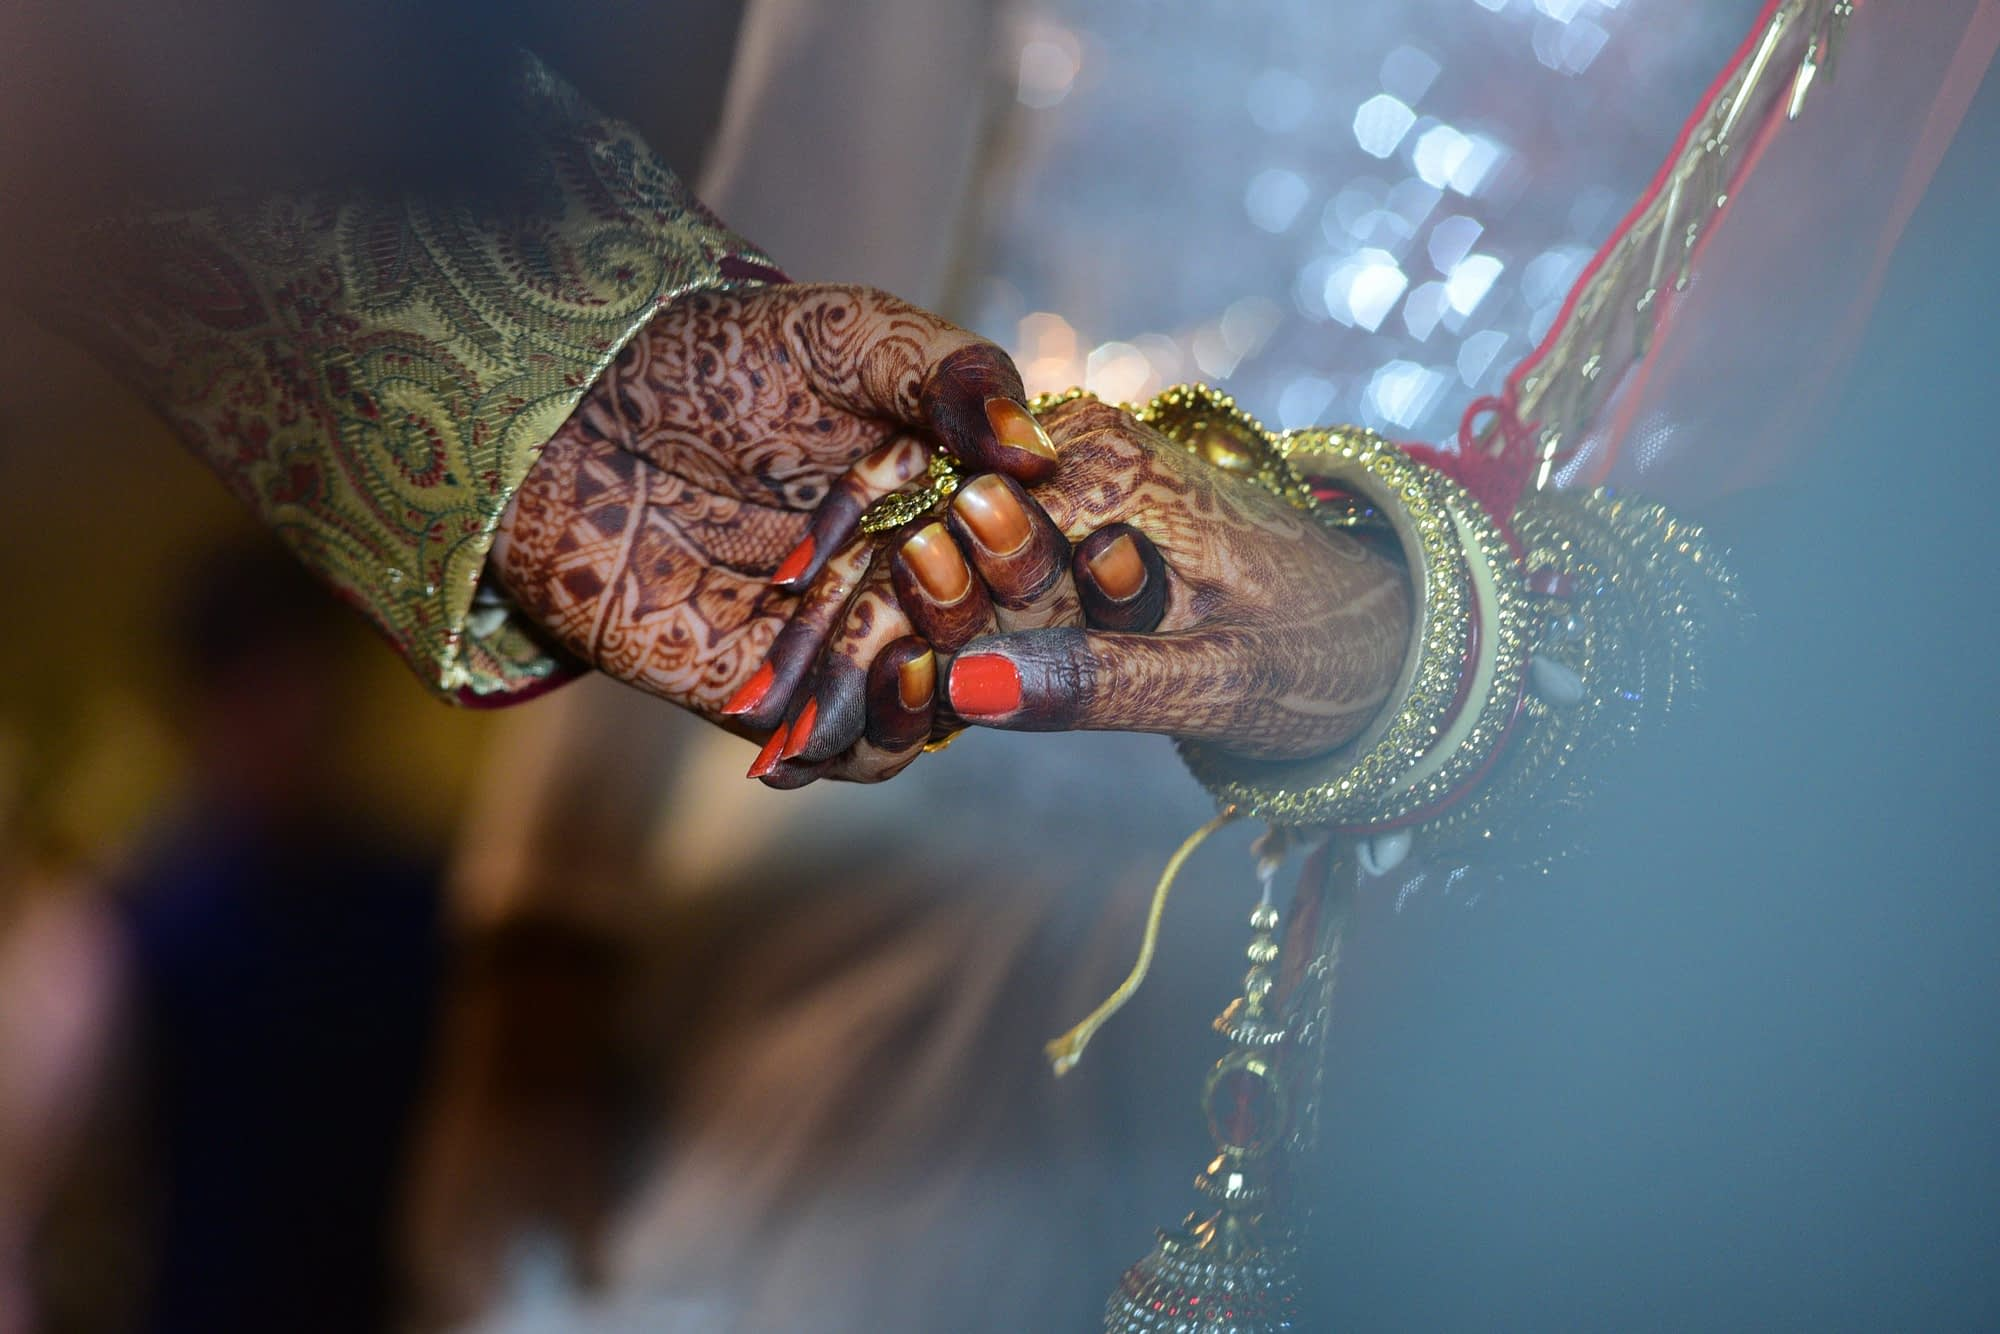 21 creative ideas to reduce marriage expenses in India